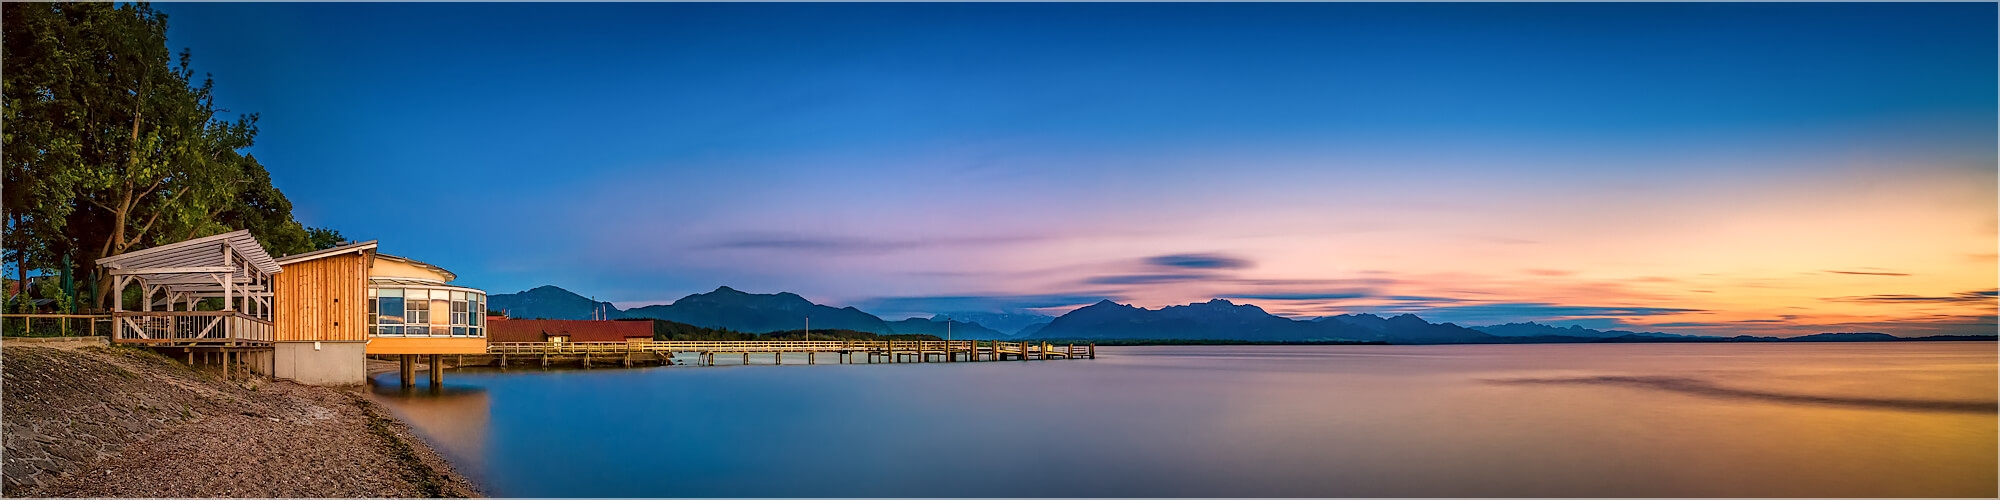 Panoramabild Sommerabend am Chiemsee